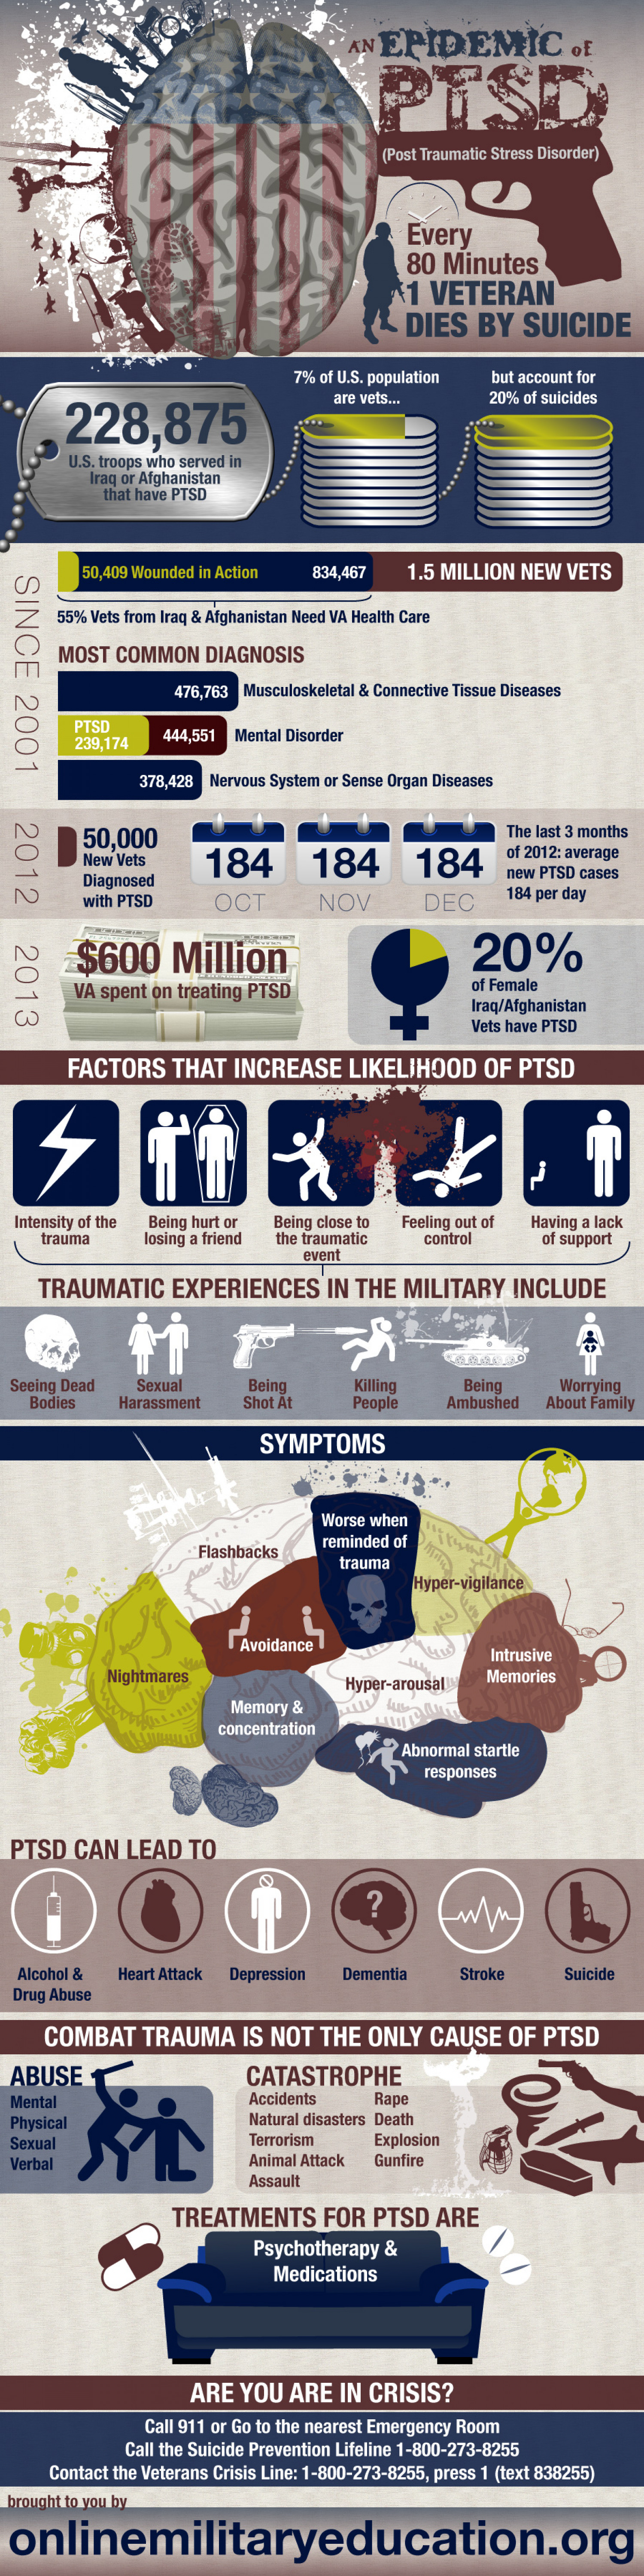 An Epidemic Of PTSD (Post Traumatic Stress Disorder) Infographic